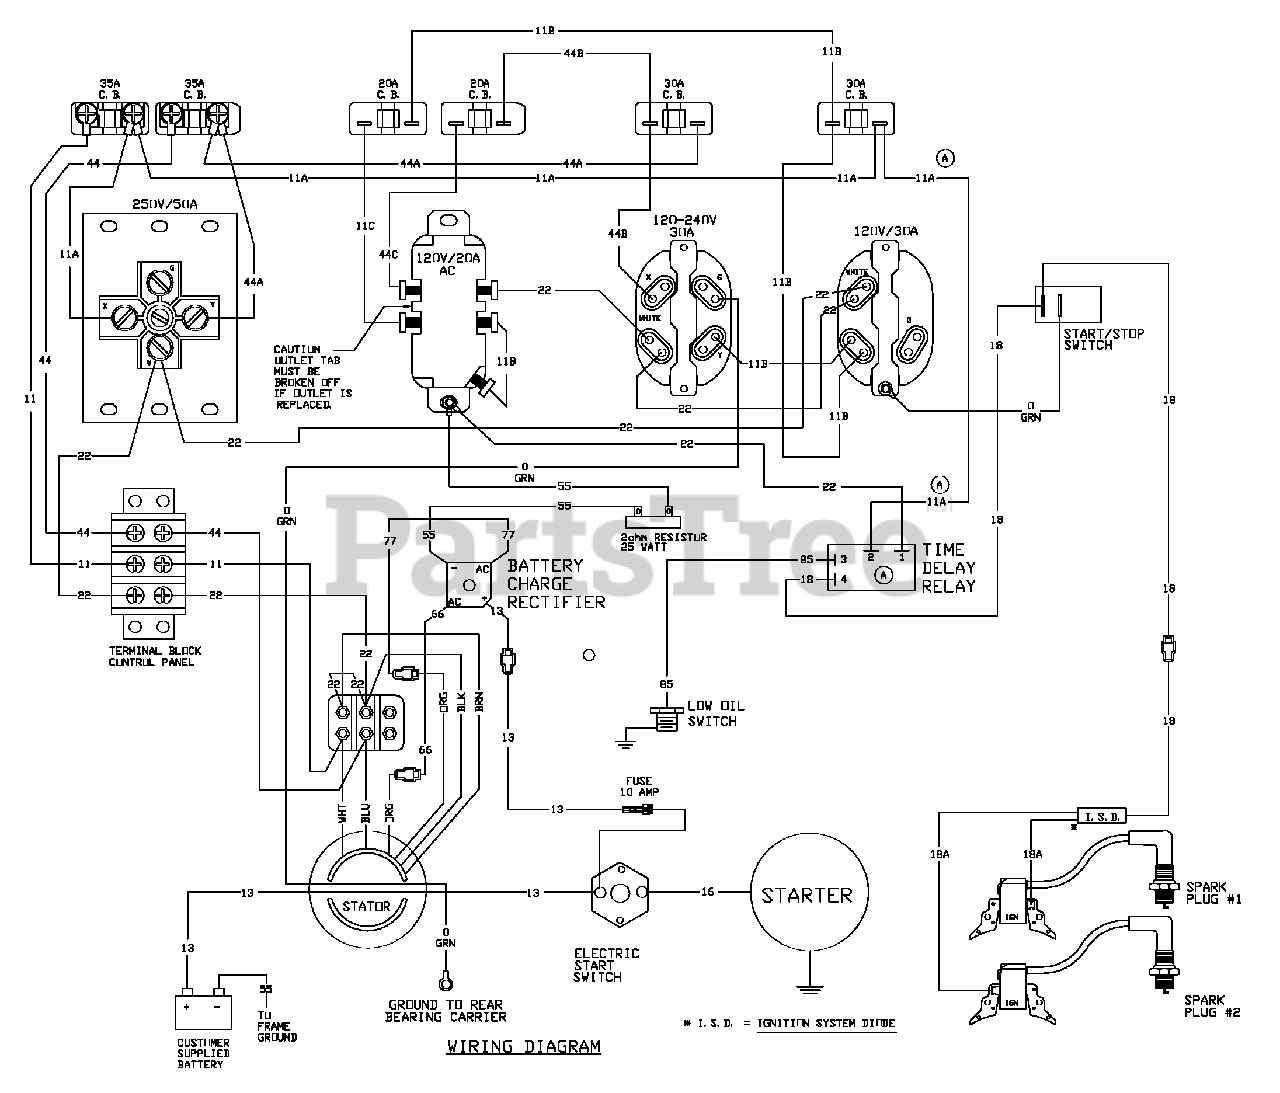 Portable Generator Wiring Diagram For Your Needs